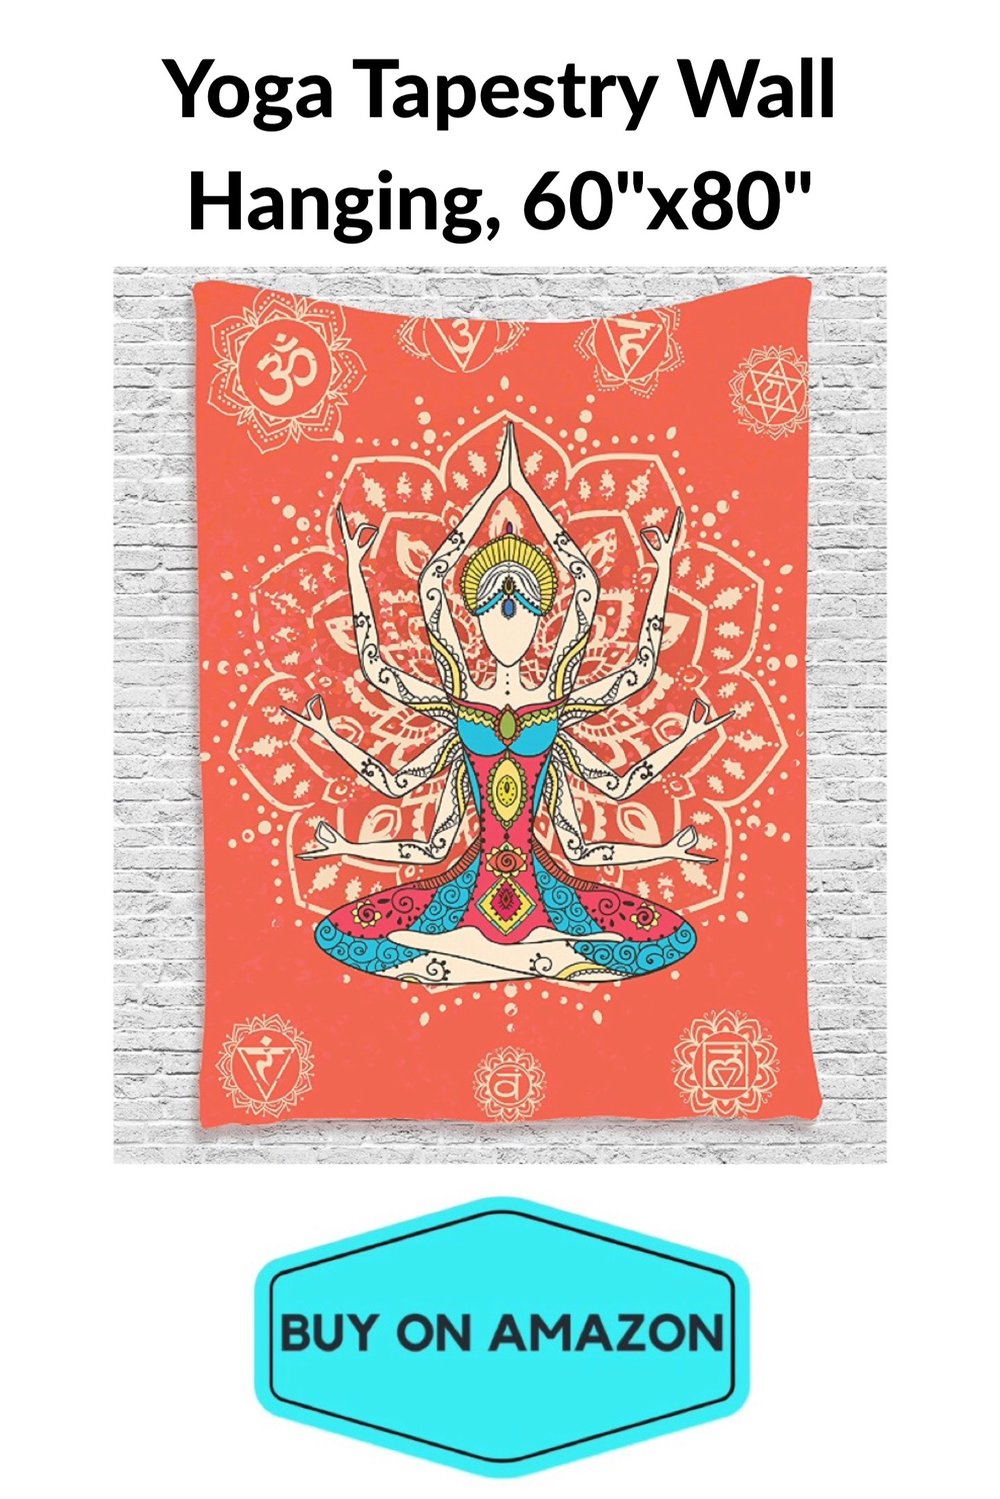 "Yoga Tapestry Wall Hanging 60"" x 80"""